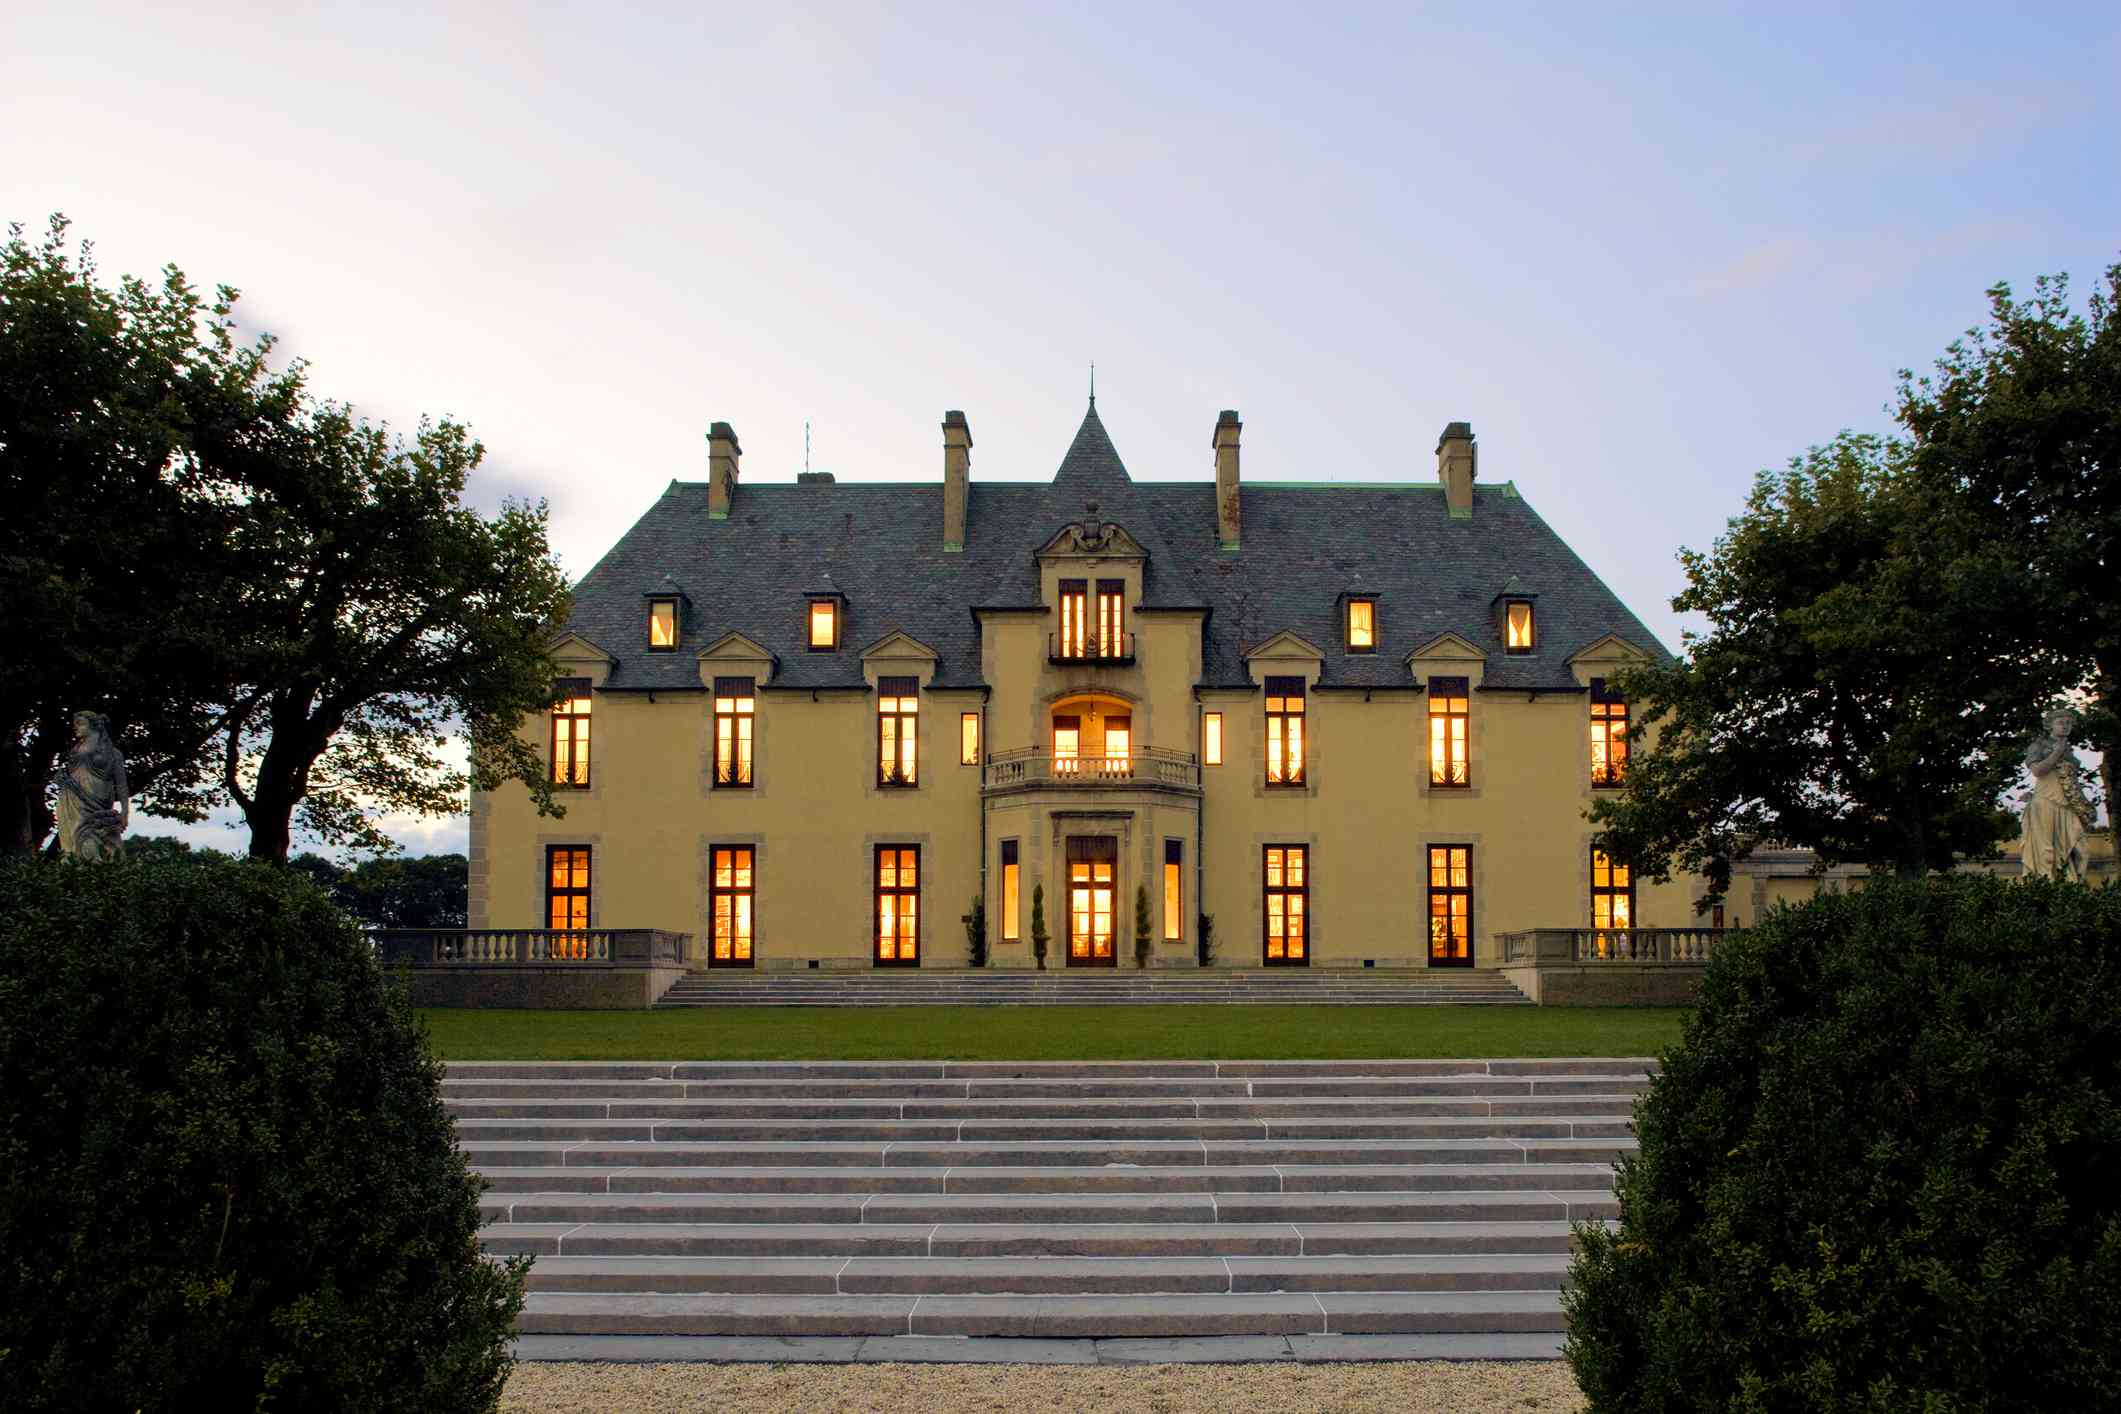 The evening view of chateau-like early 20th century estate Oheka Castle.